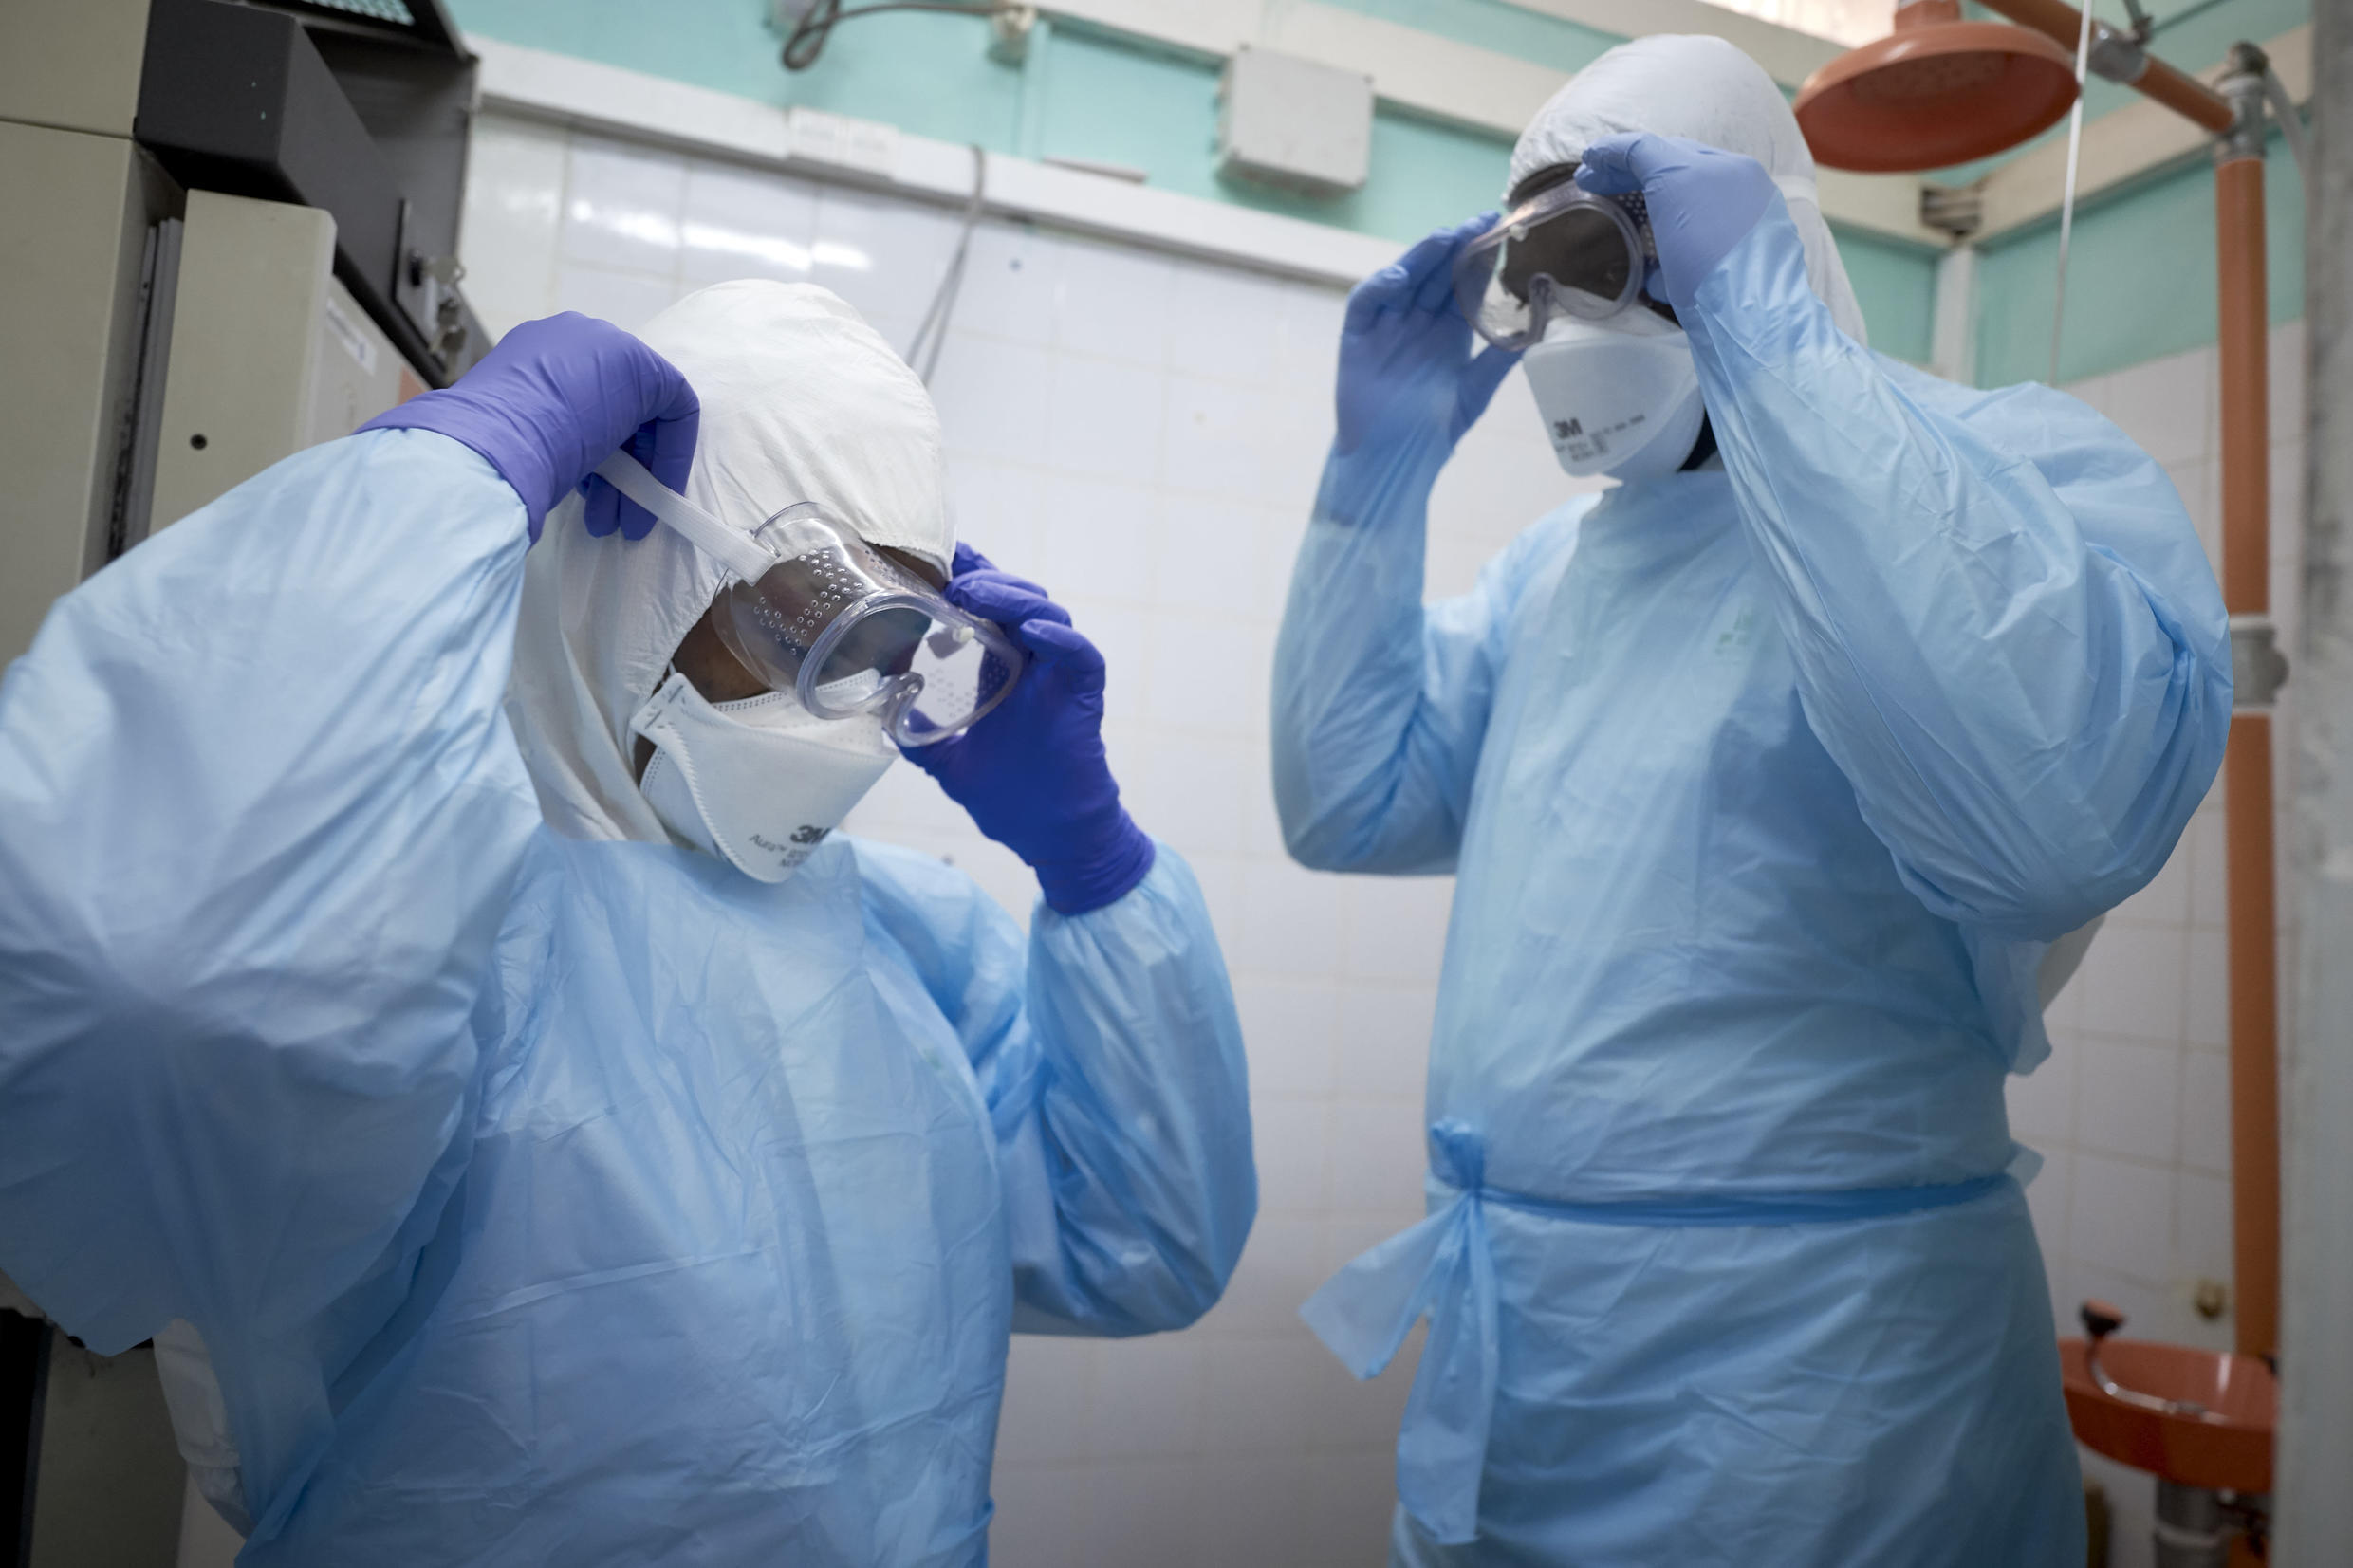 Malian researchers get suited up to conduct a coronavirus test at a lab in Bamako